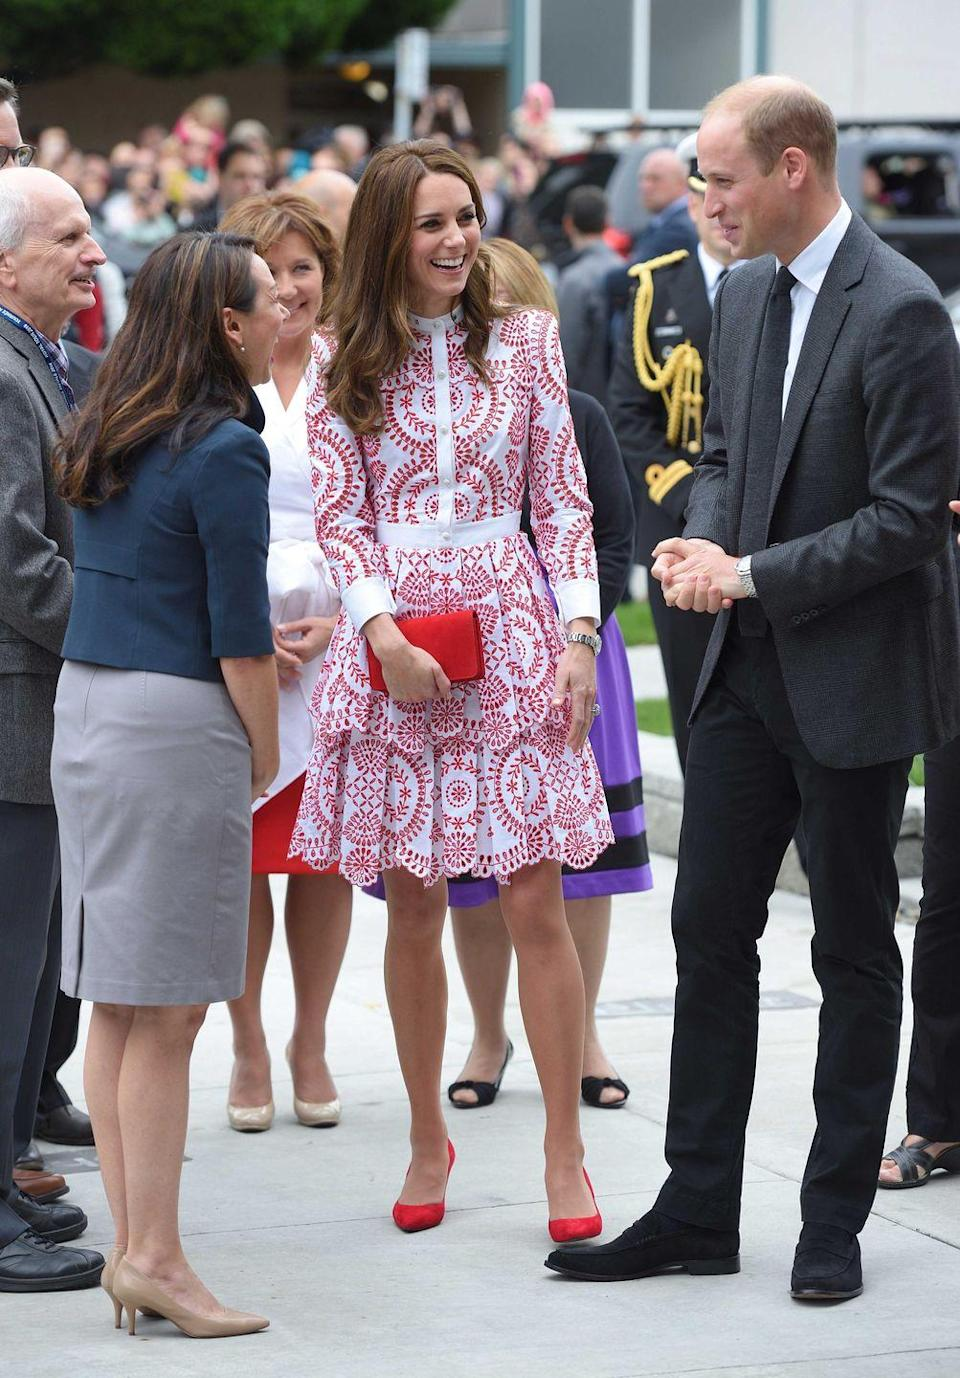 <p>The Duke and Duchess arrived in Vancouver, British Columbia by seaplane and greeted the crowd. Duchess Kate wore an Alexander McQueen dress with matching red pumps and a clutch.</p>